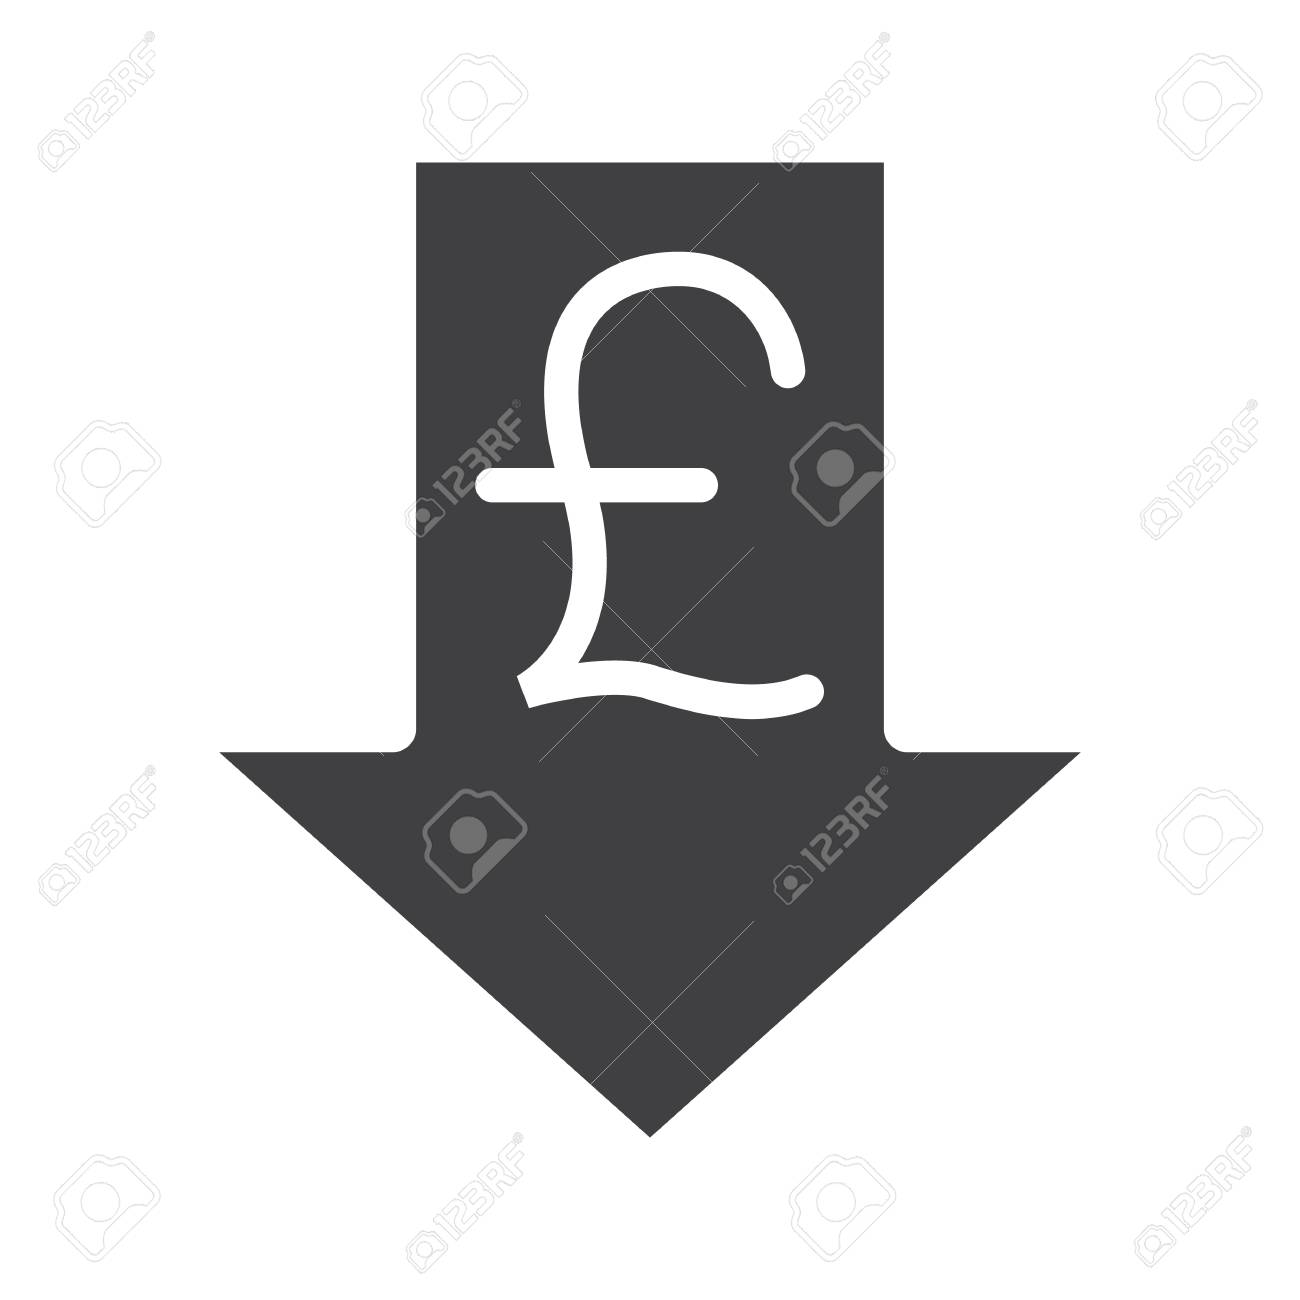 Down arrow text symbol image collections symbol and sign ideas pound rate falling glyph icon silhouette symbol great britain silhouette symbol great britain pound with down buycottarizona